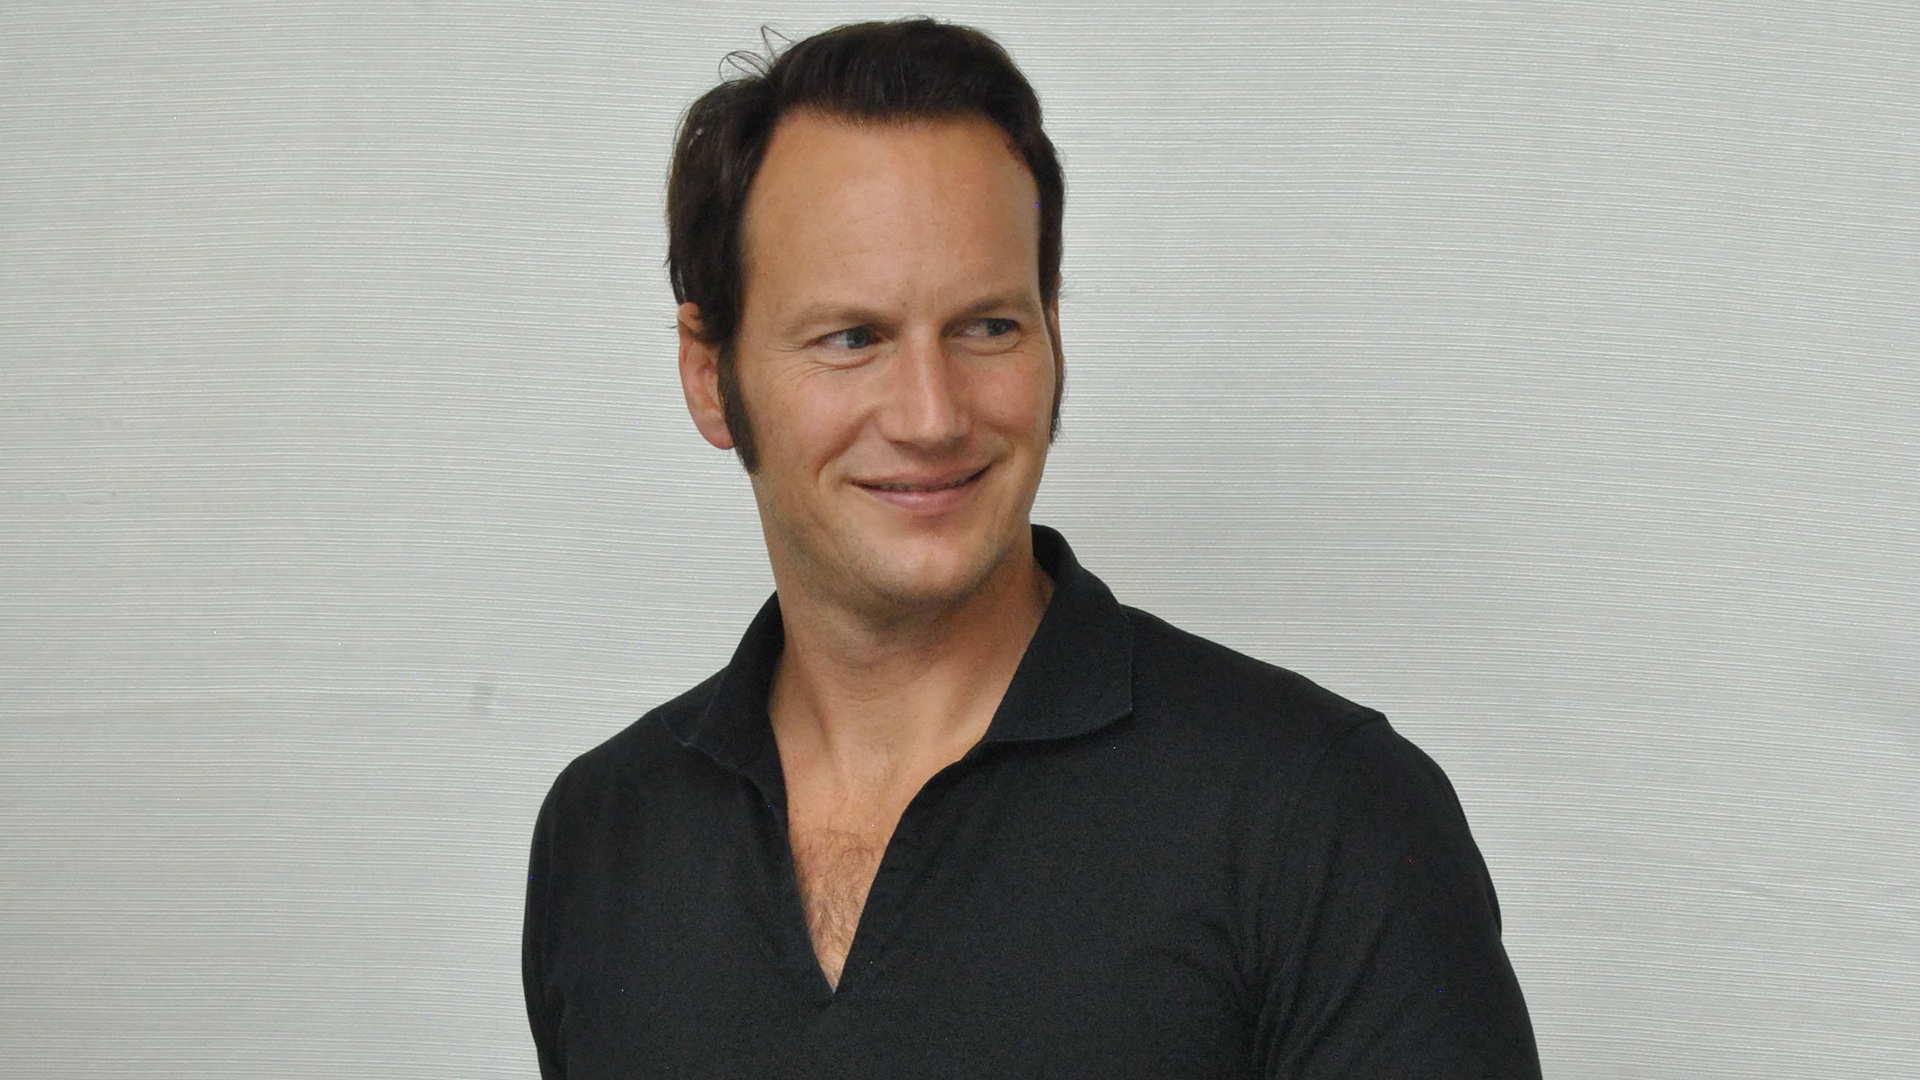 Anime Video Wallpaper Patrick Wilson Wallpapers Hd Pictures Images High Quality